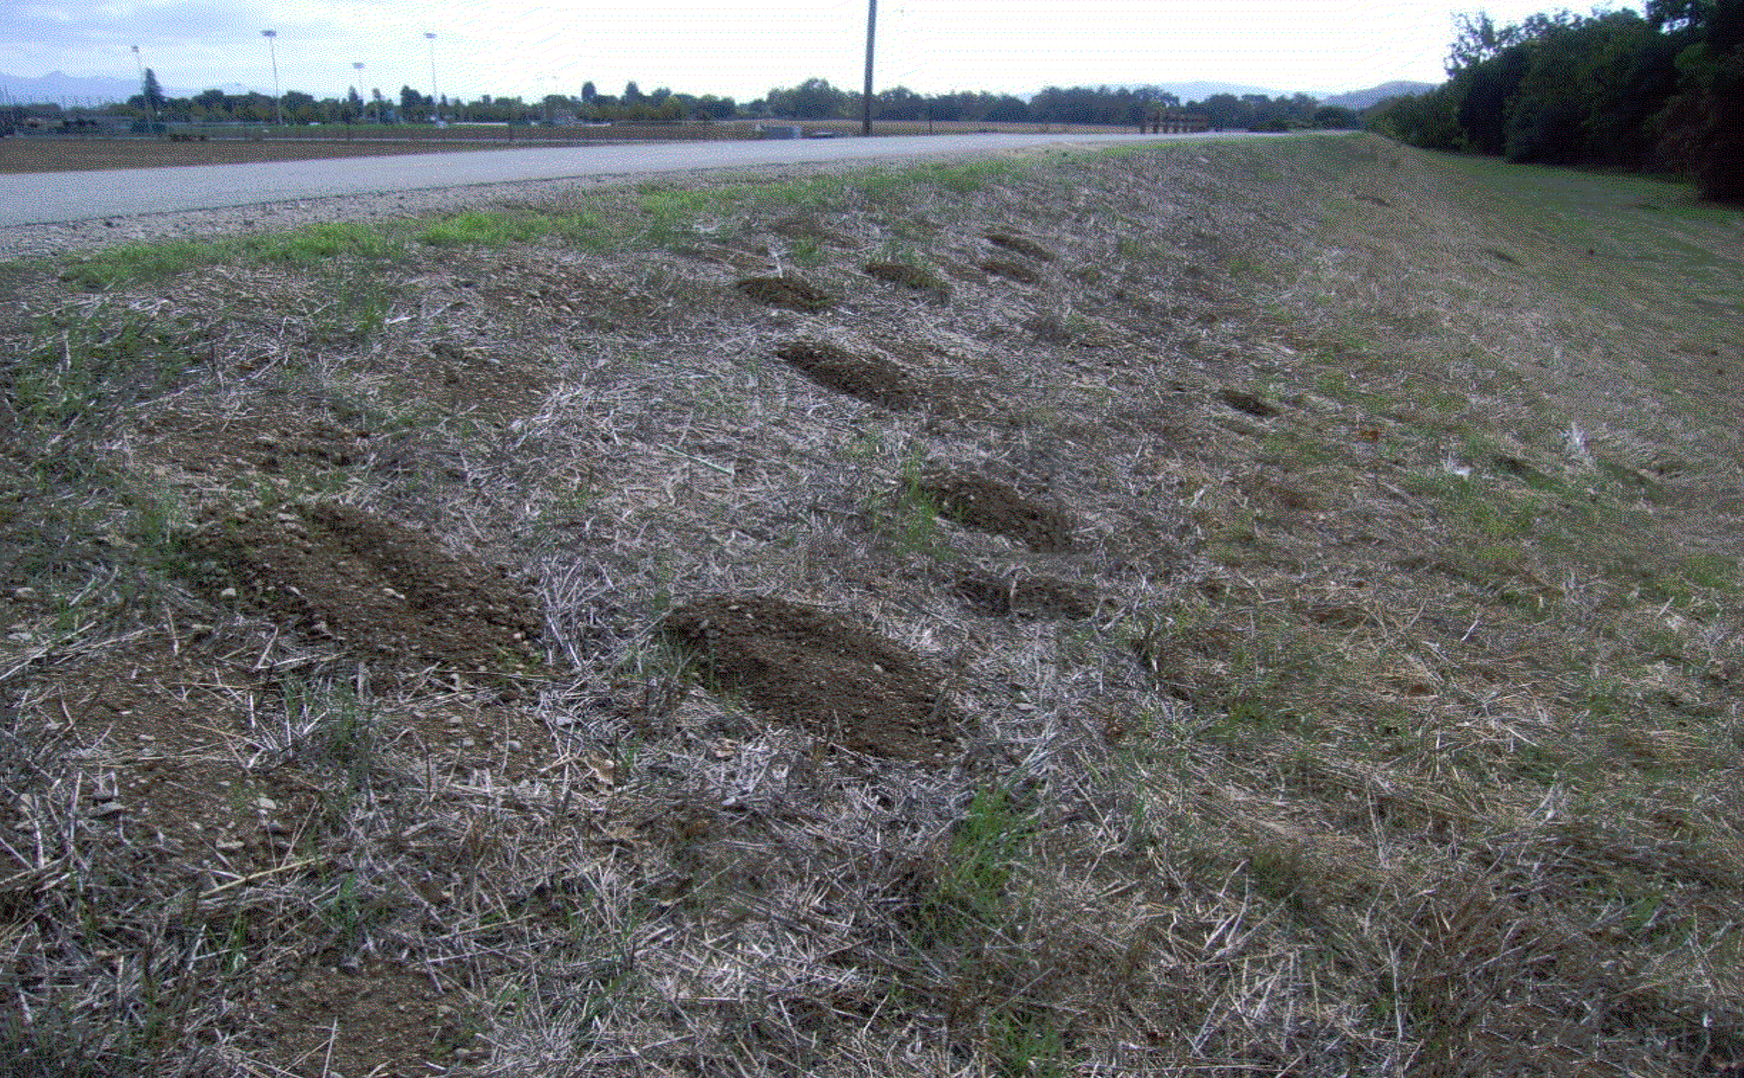 Uvas levee burrowing rodent damage